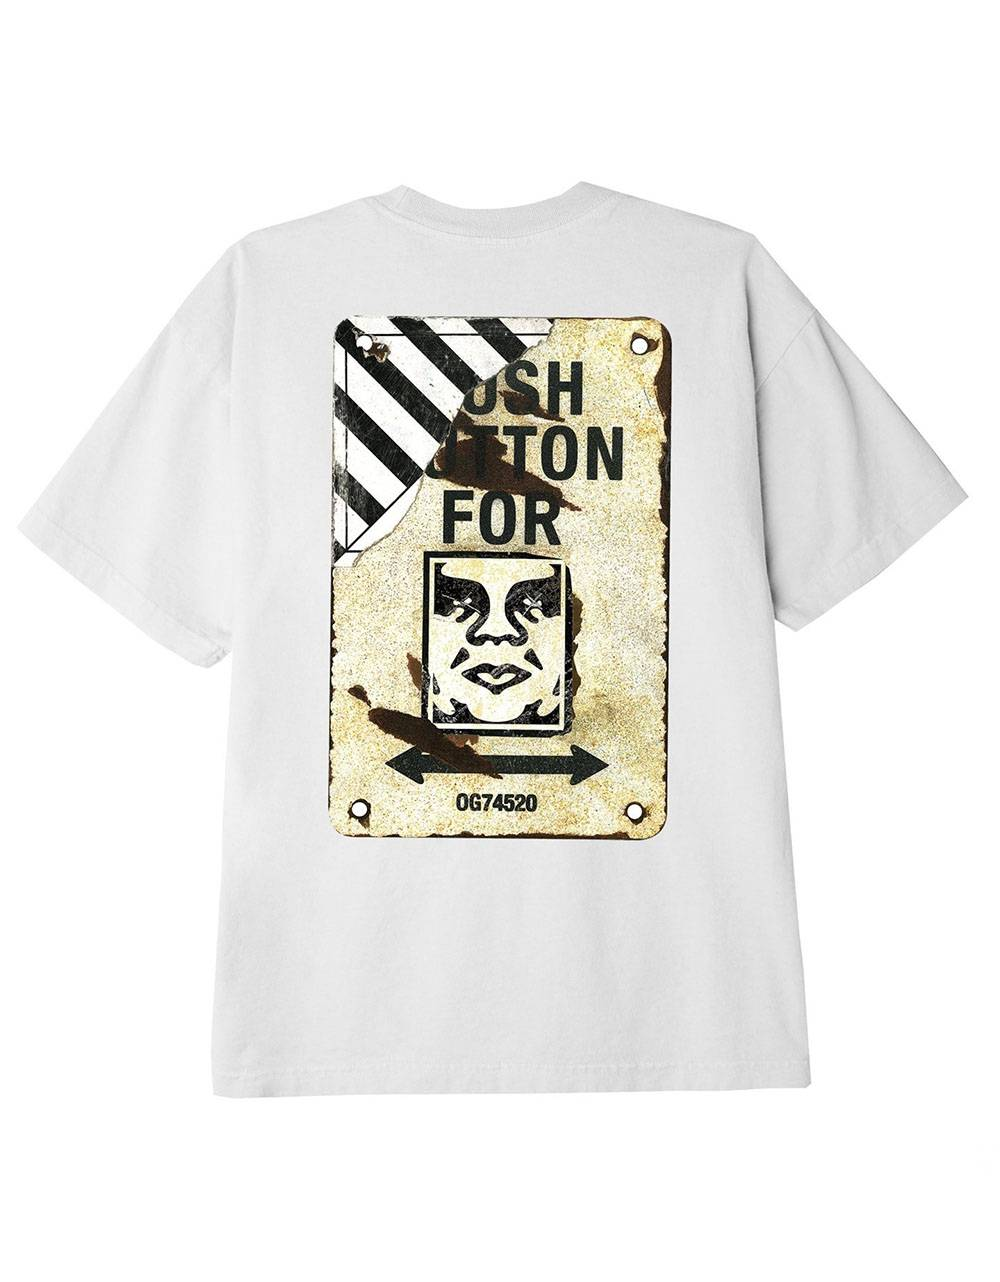 Obey Crosswalk sign classic t-shirt - white obey T-shirt 45,00€